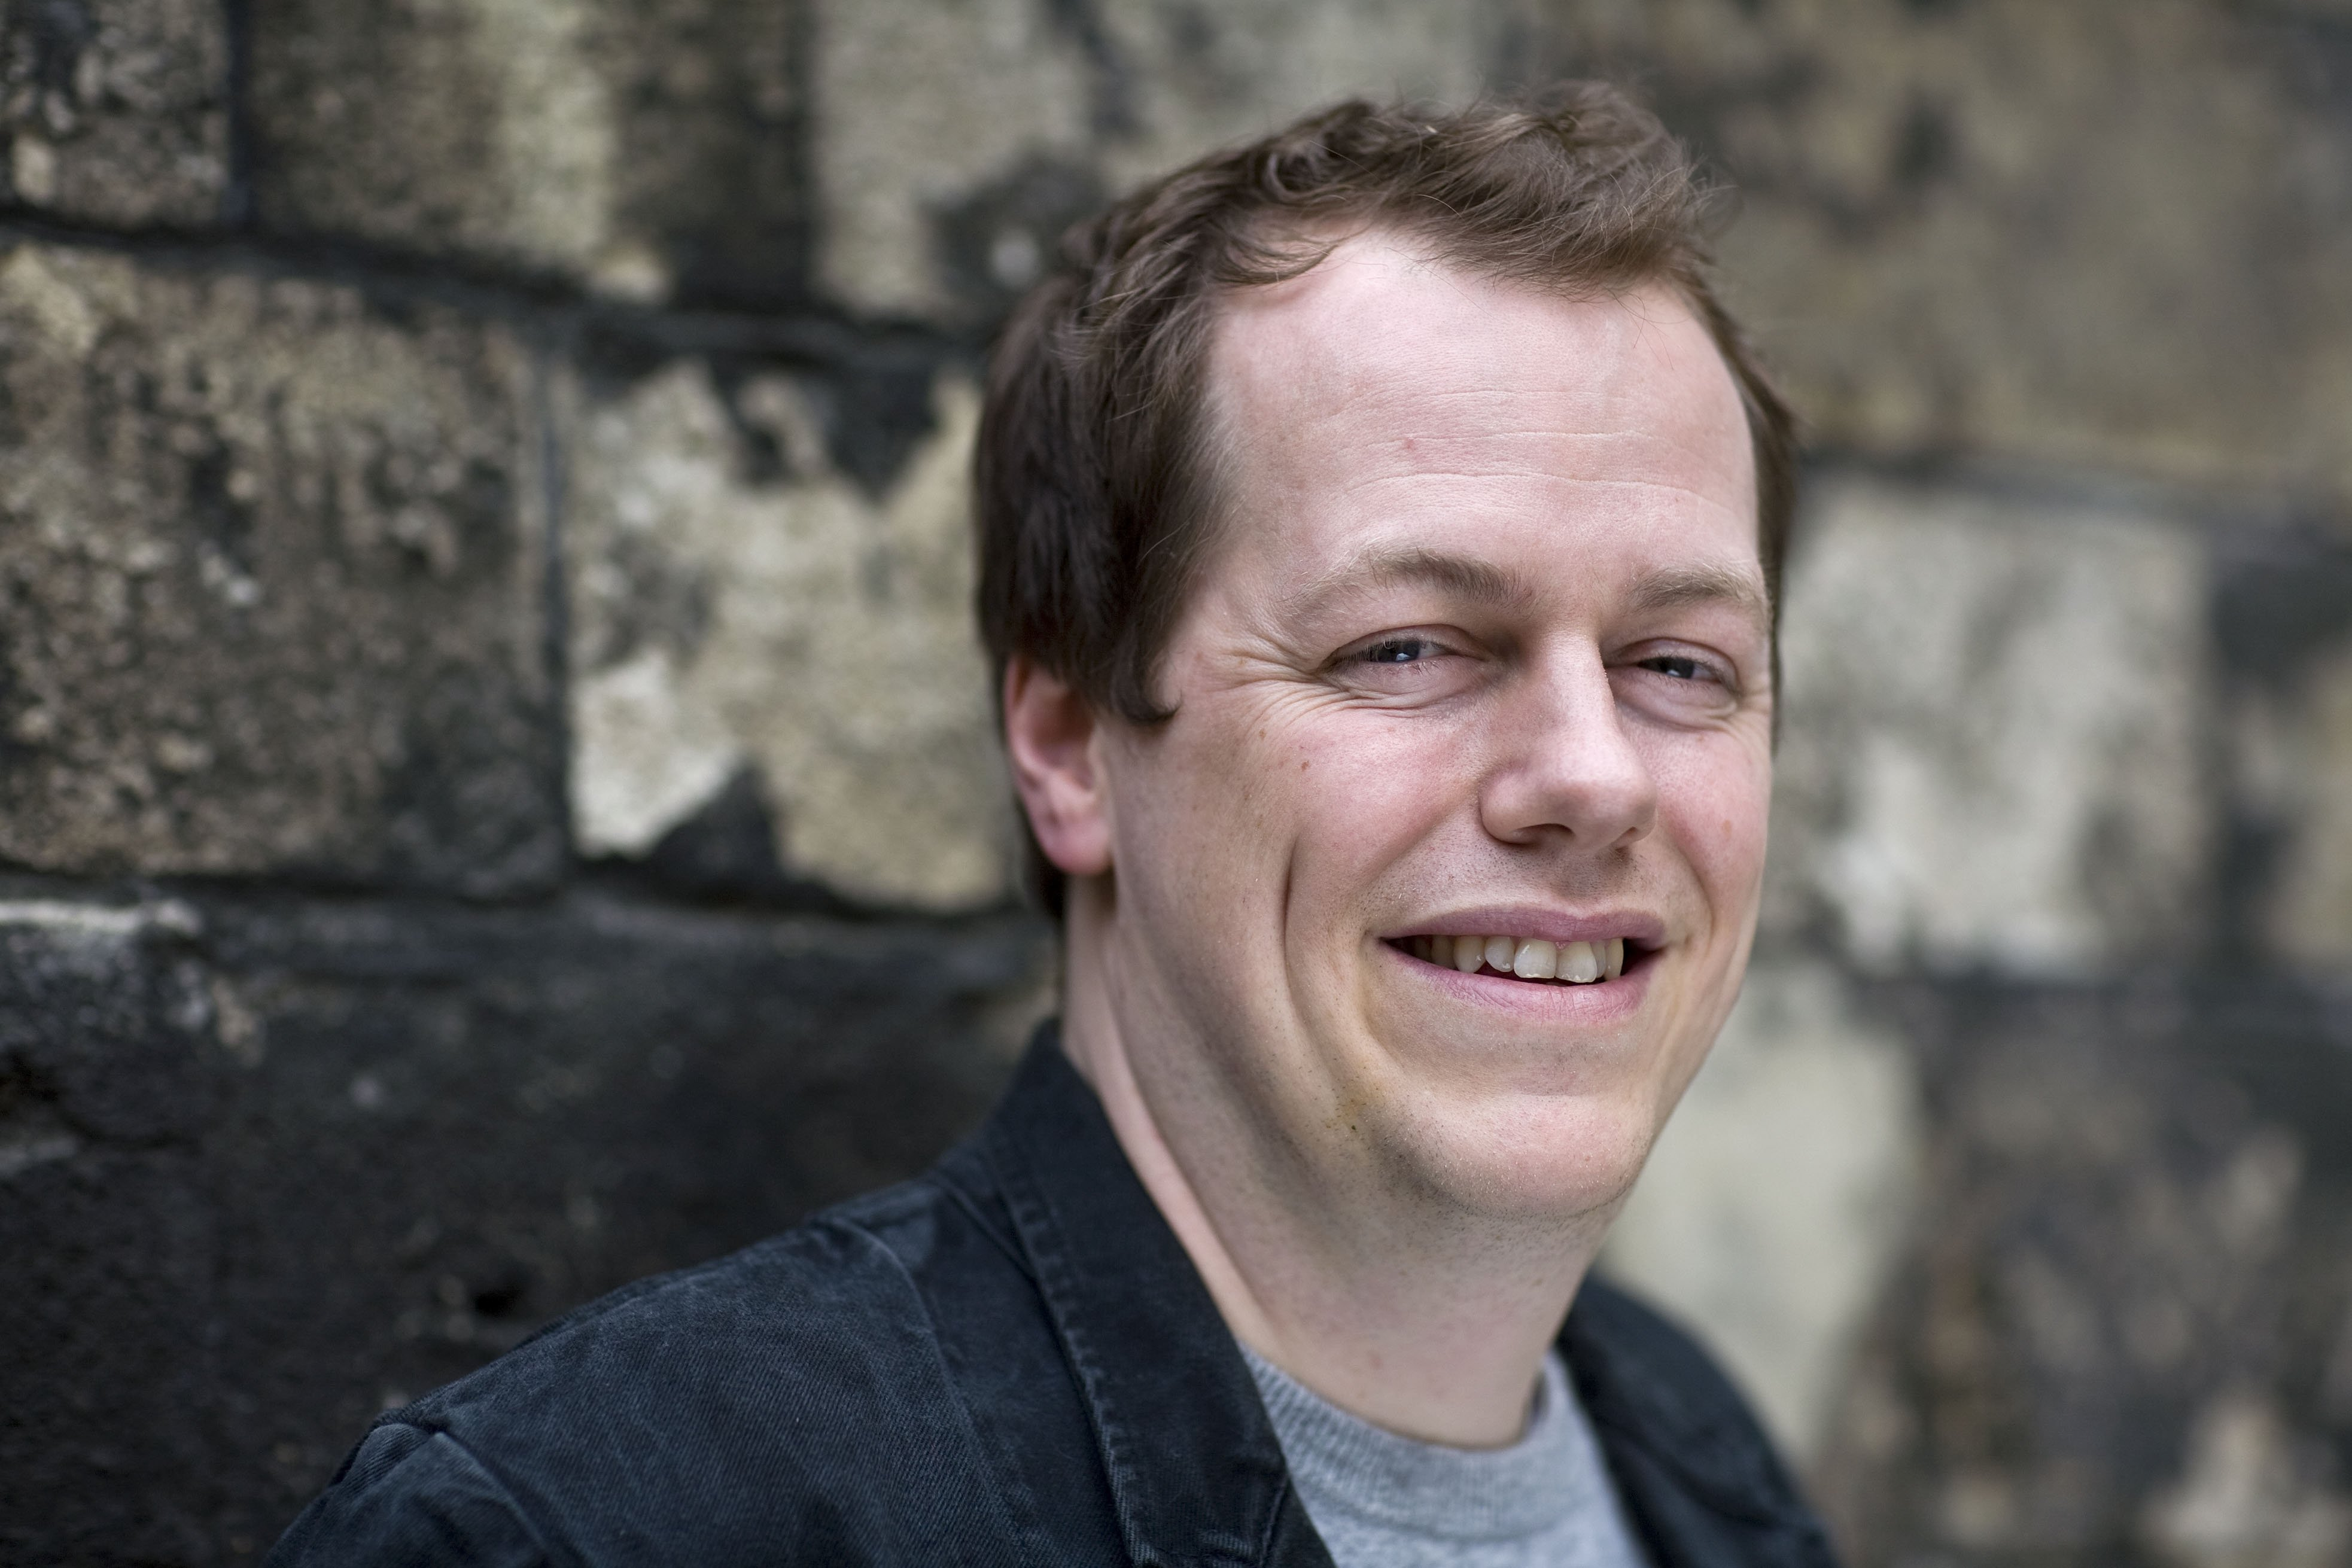 Tom Parker Bowles, am 26. März 2010 in Oxford, England.   Quelle: Getty Images